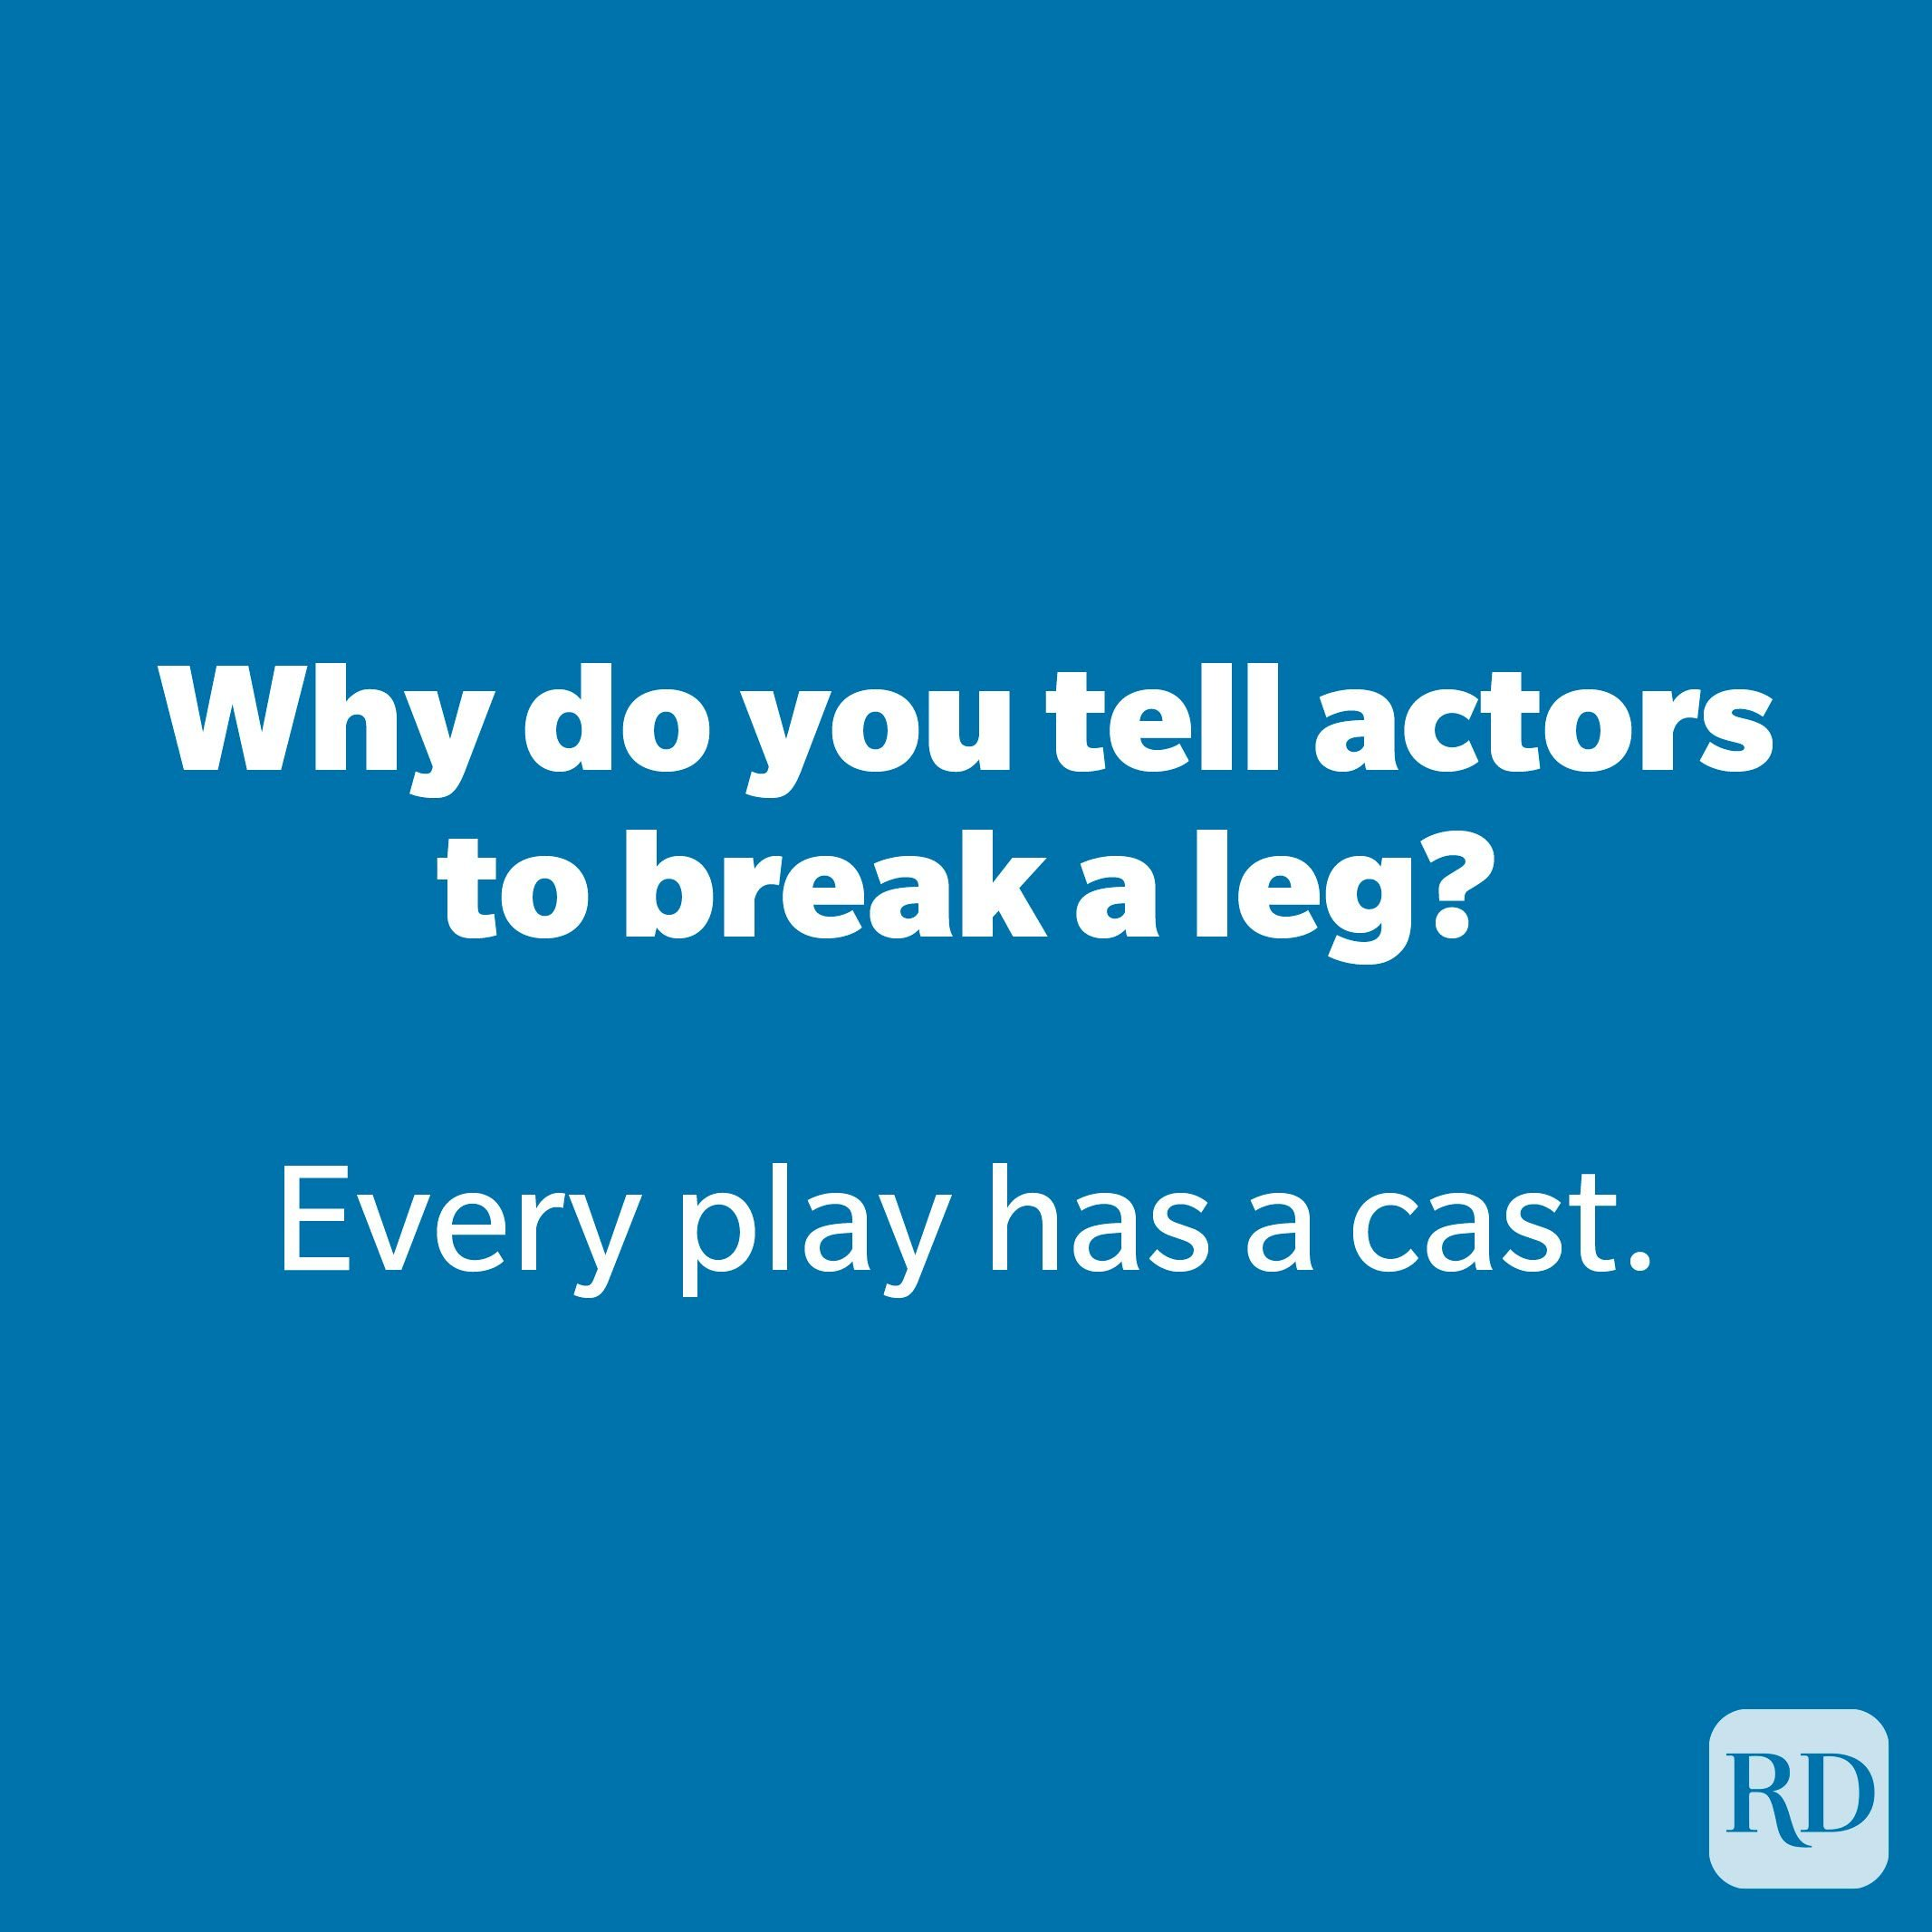 Why do you tell actors to break a leg?